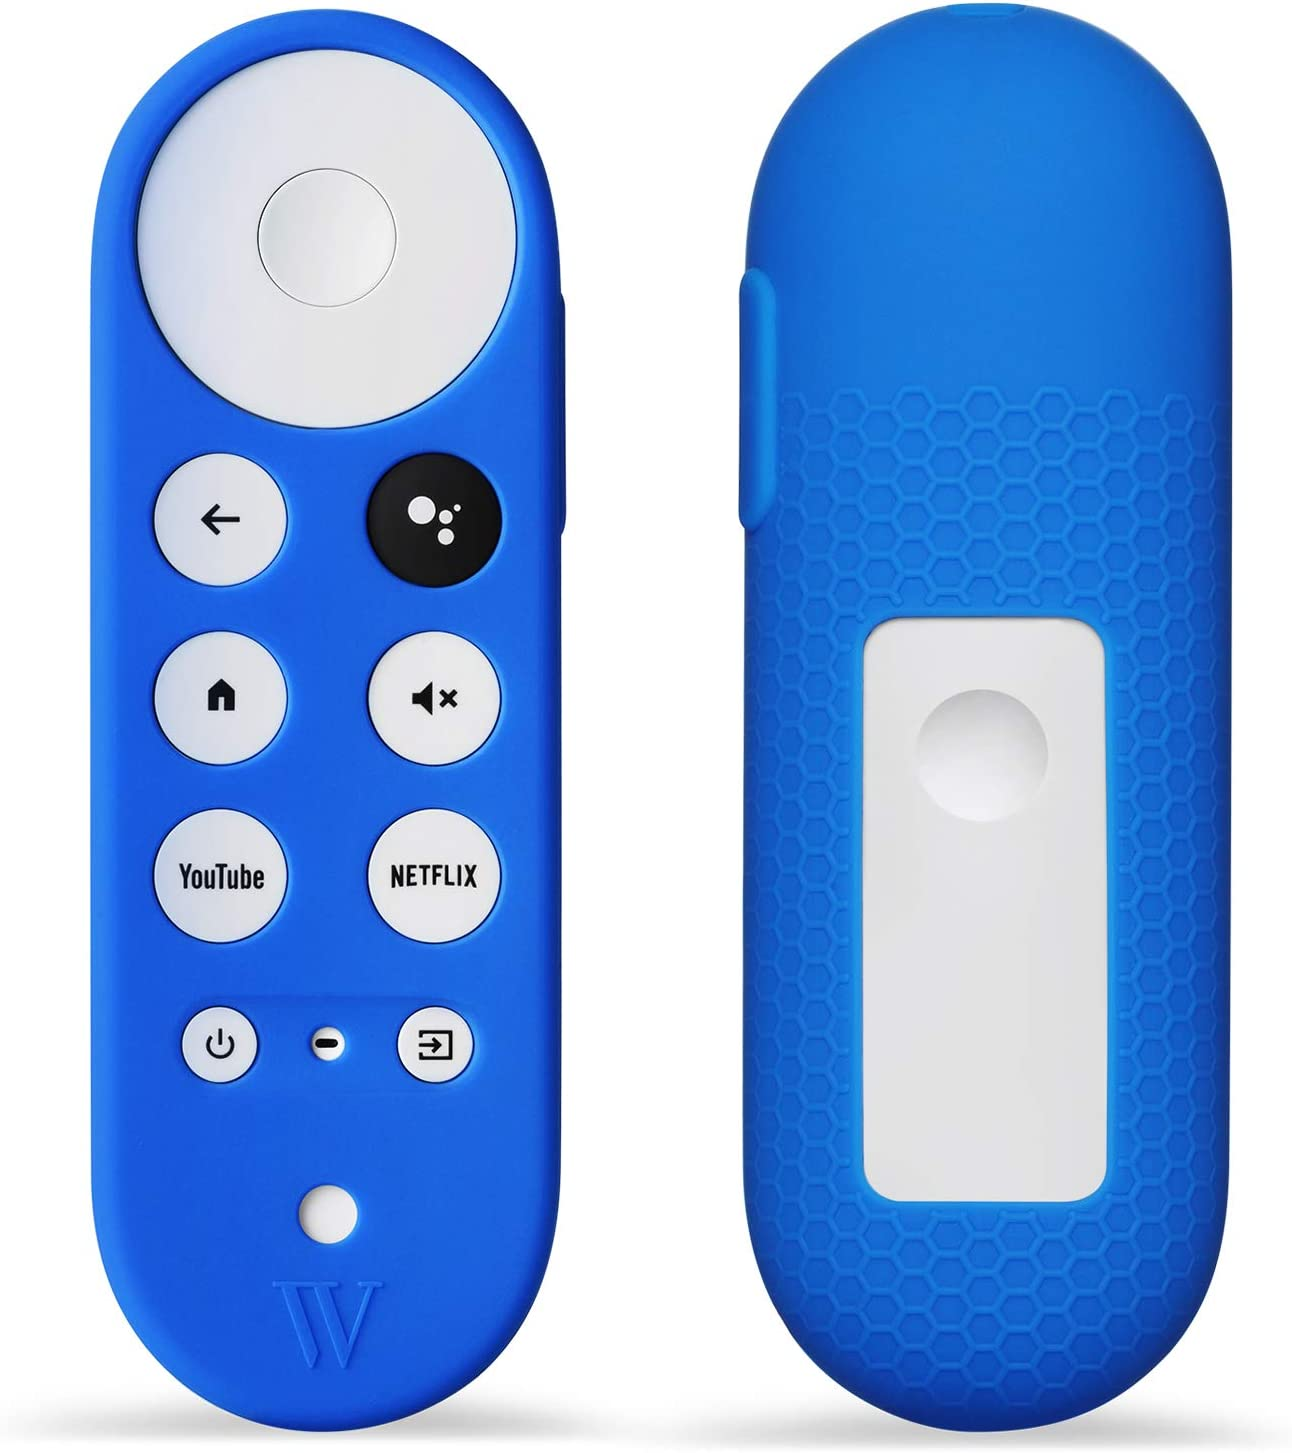 Wasserstein Silicone Skin Compatible with Chromecast with Google TV Remote Control - Protective Cover for Your Remote Control (Blue)